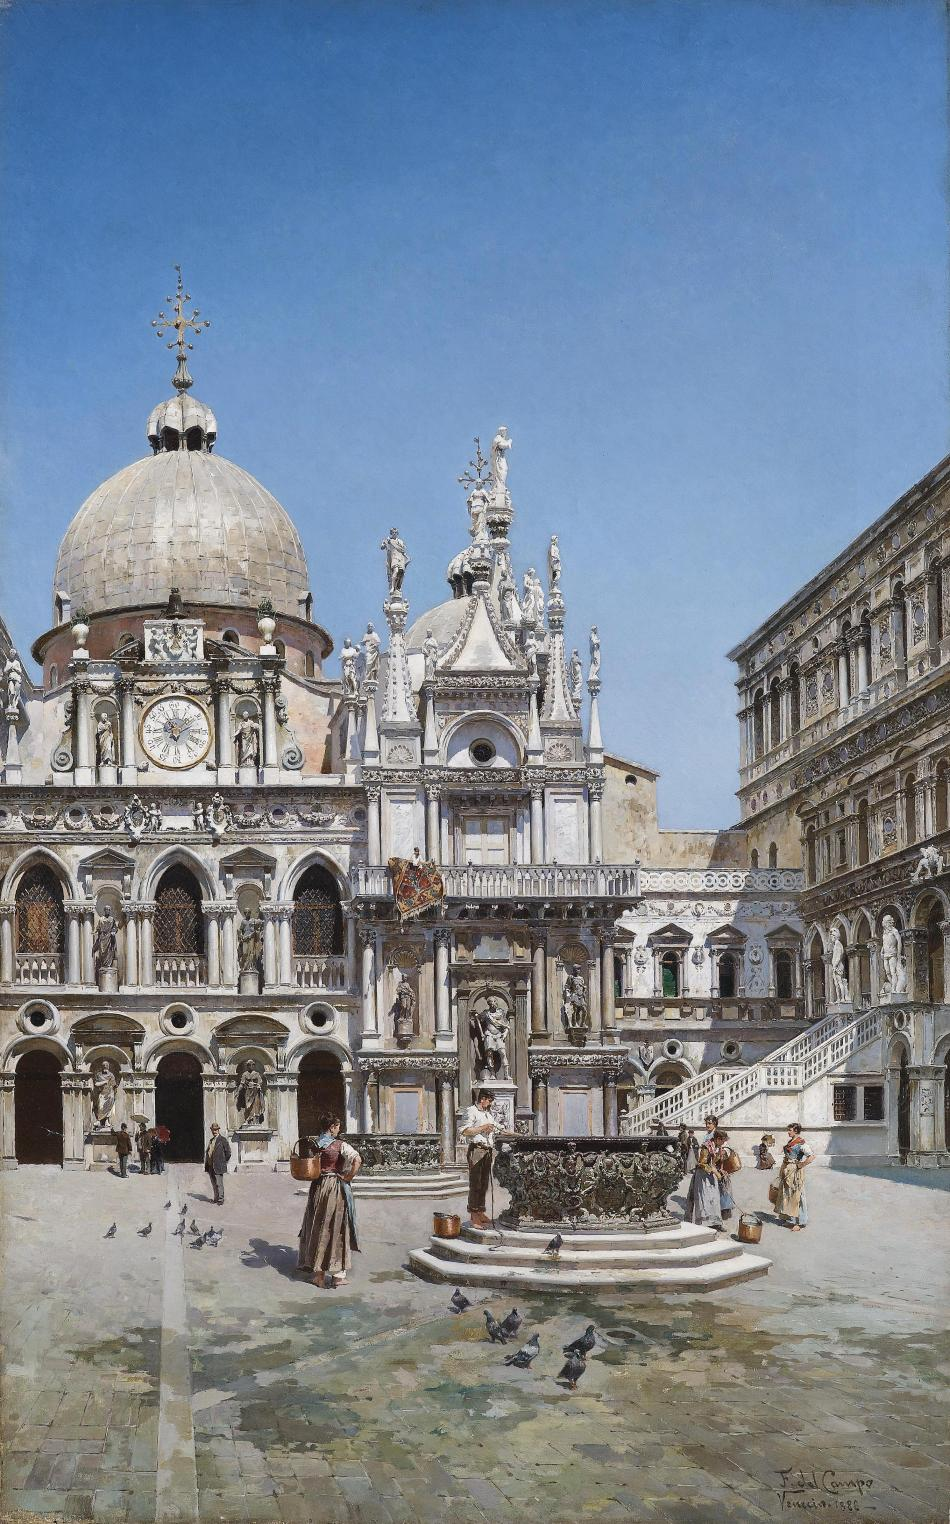 Federico del Campo – private collection. Title: Courtyard of the Doge's Palace, Venice. Date: 1888. Materials: oil on canvas. Dimensions: 95 x 60 cm. Auctioned by Dorotheum in Vienna, on October 16, 2012. Source: https://commons.wikimedia.org/wiki/File:Federico_del_Campo_Innenhof_Palazzo_Ducale_Venedig_1888.jpg. I have changed the contrast of the original photo.